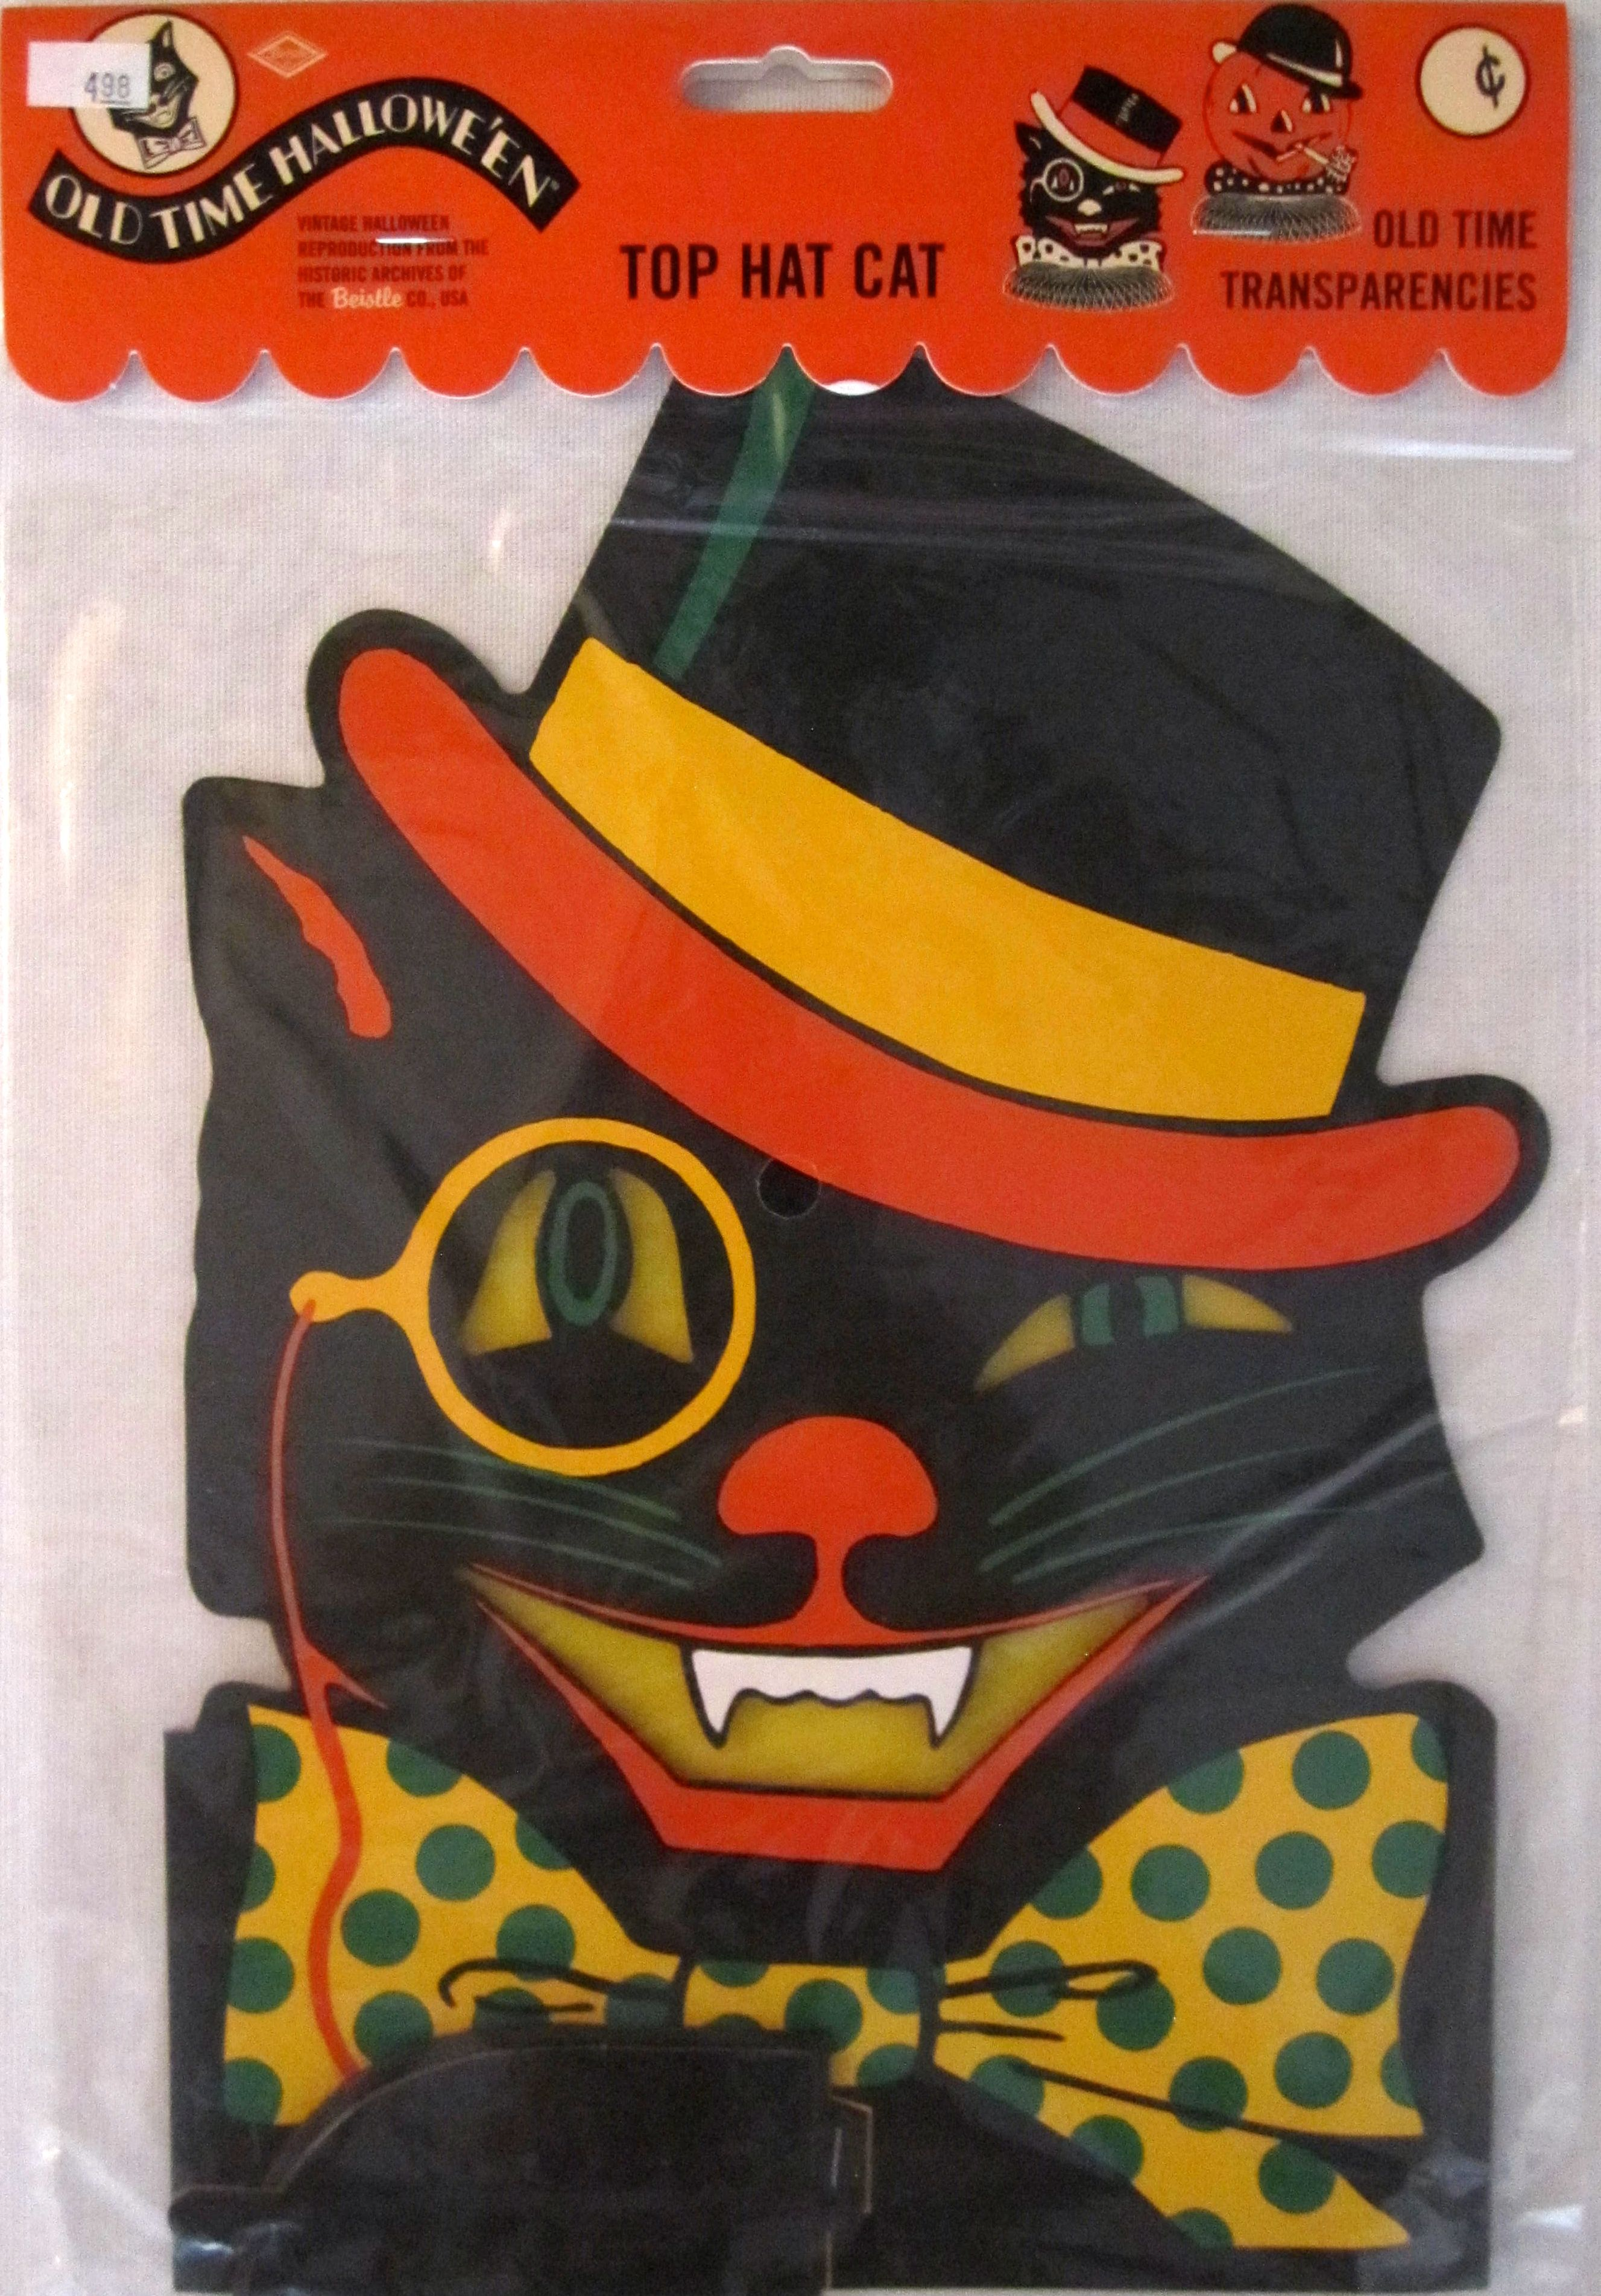 vintage halloween decorations reproduction vintage beistle early 2000s top hat cat